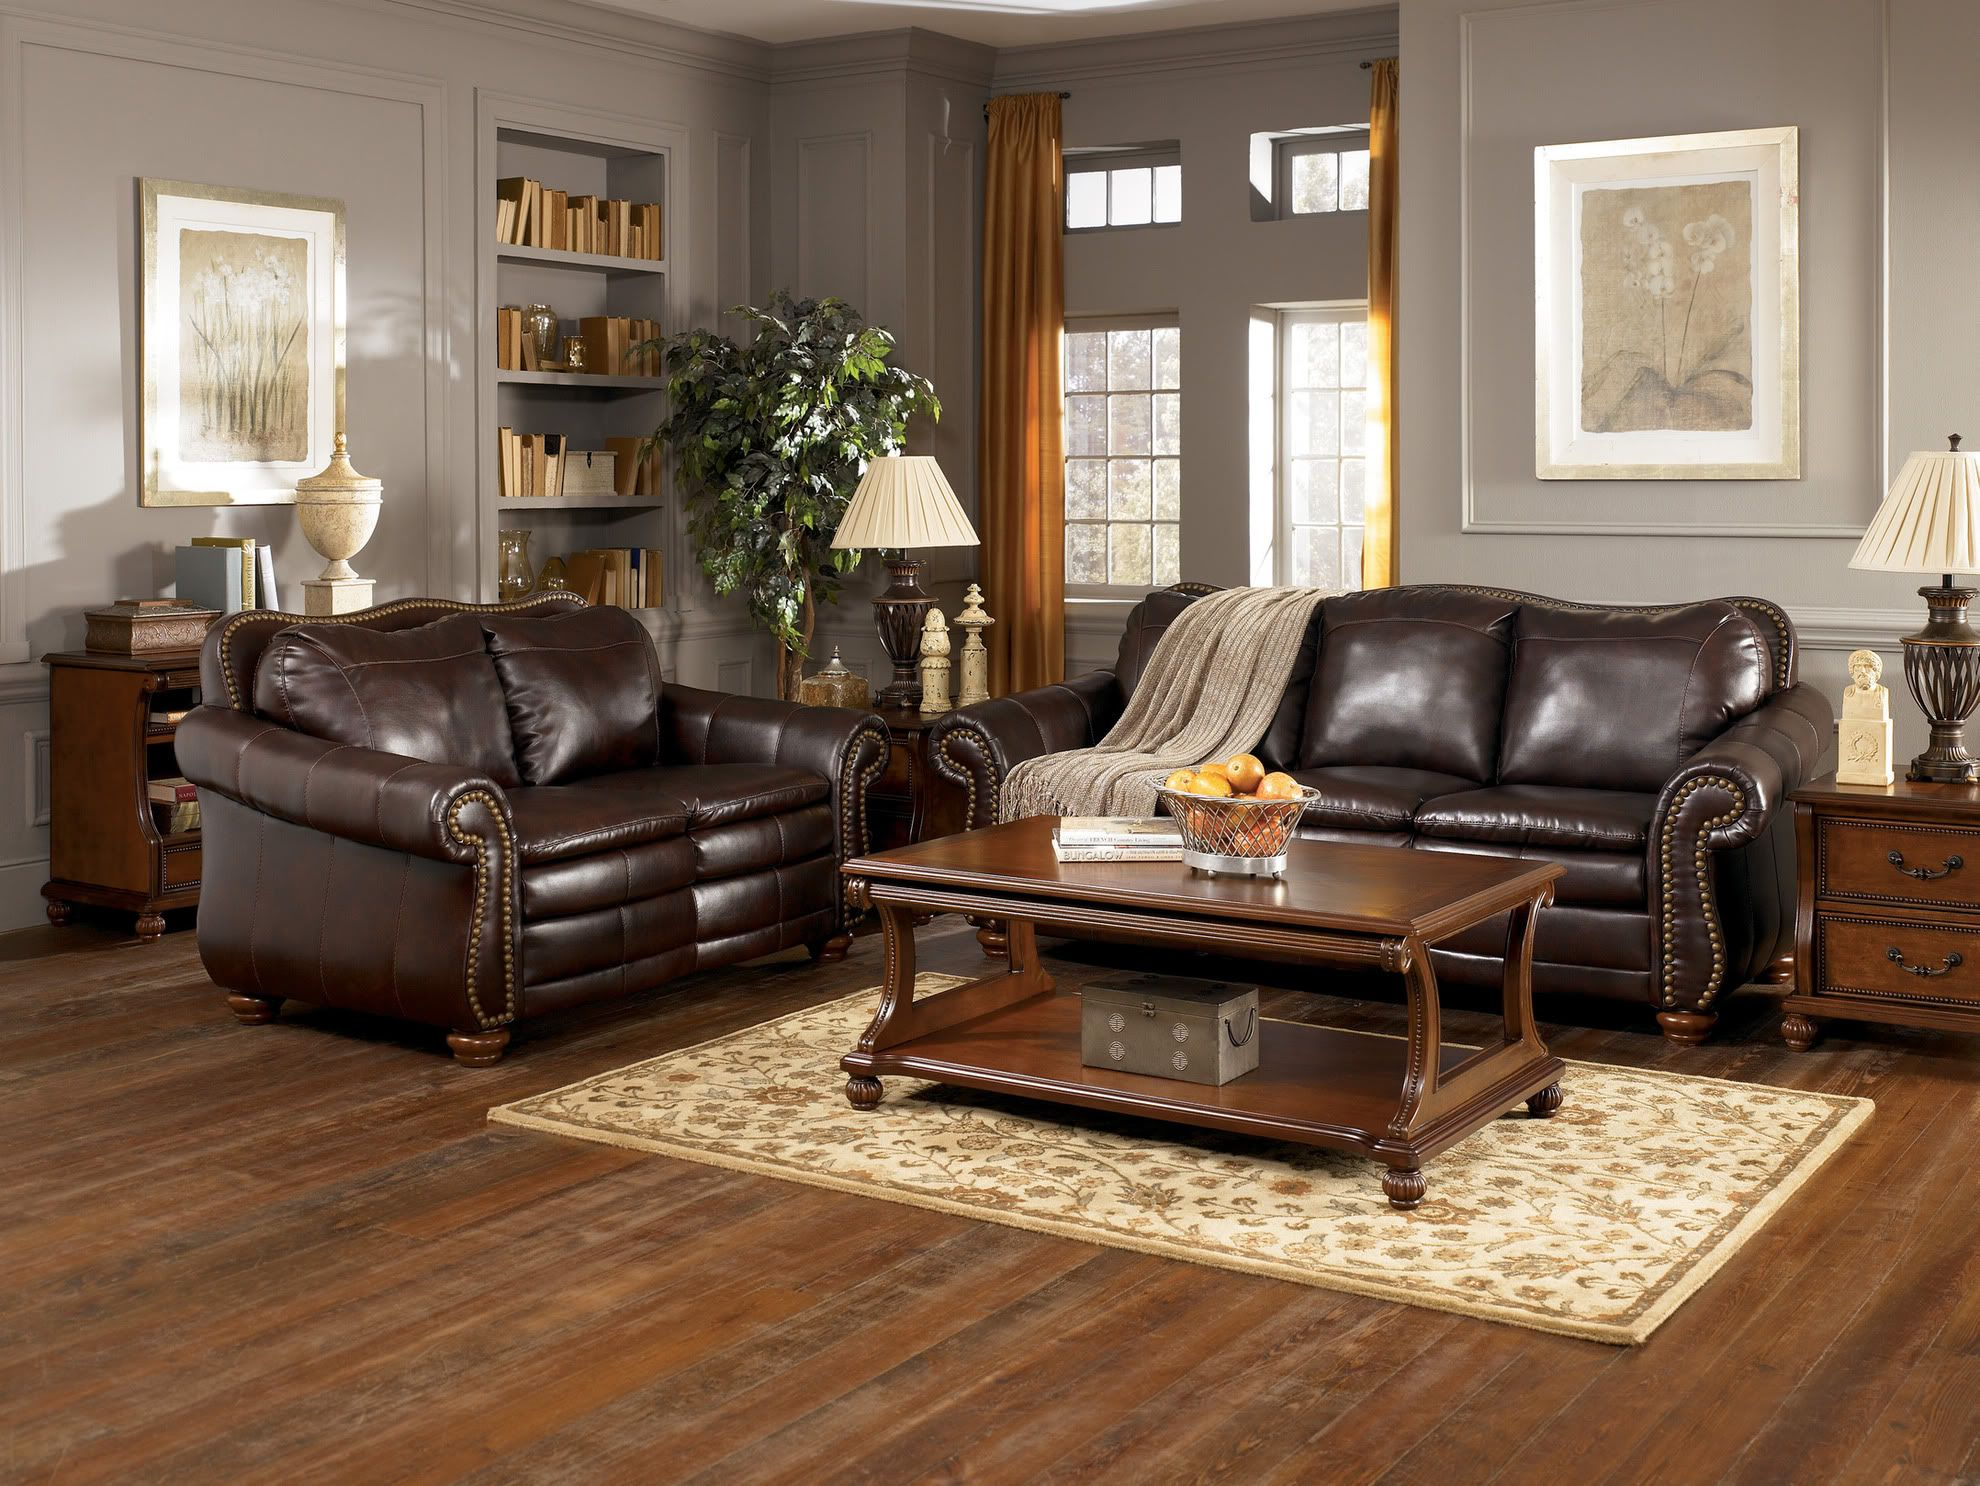 15 Gorgeous Grey Green Living Room Inspirations Brown Furniture Living Room Brown Living Room Brown Couch Living Room